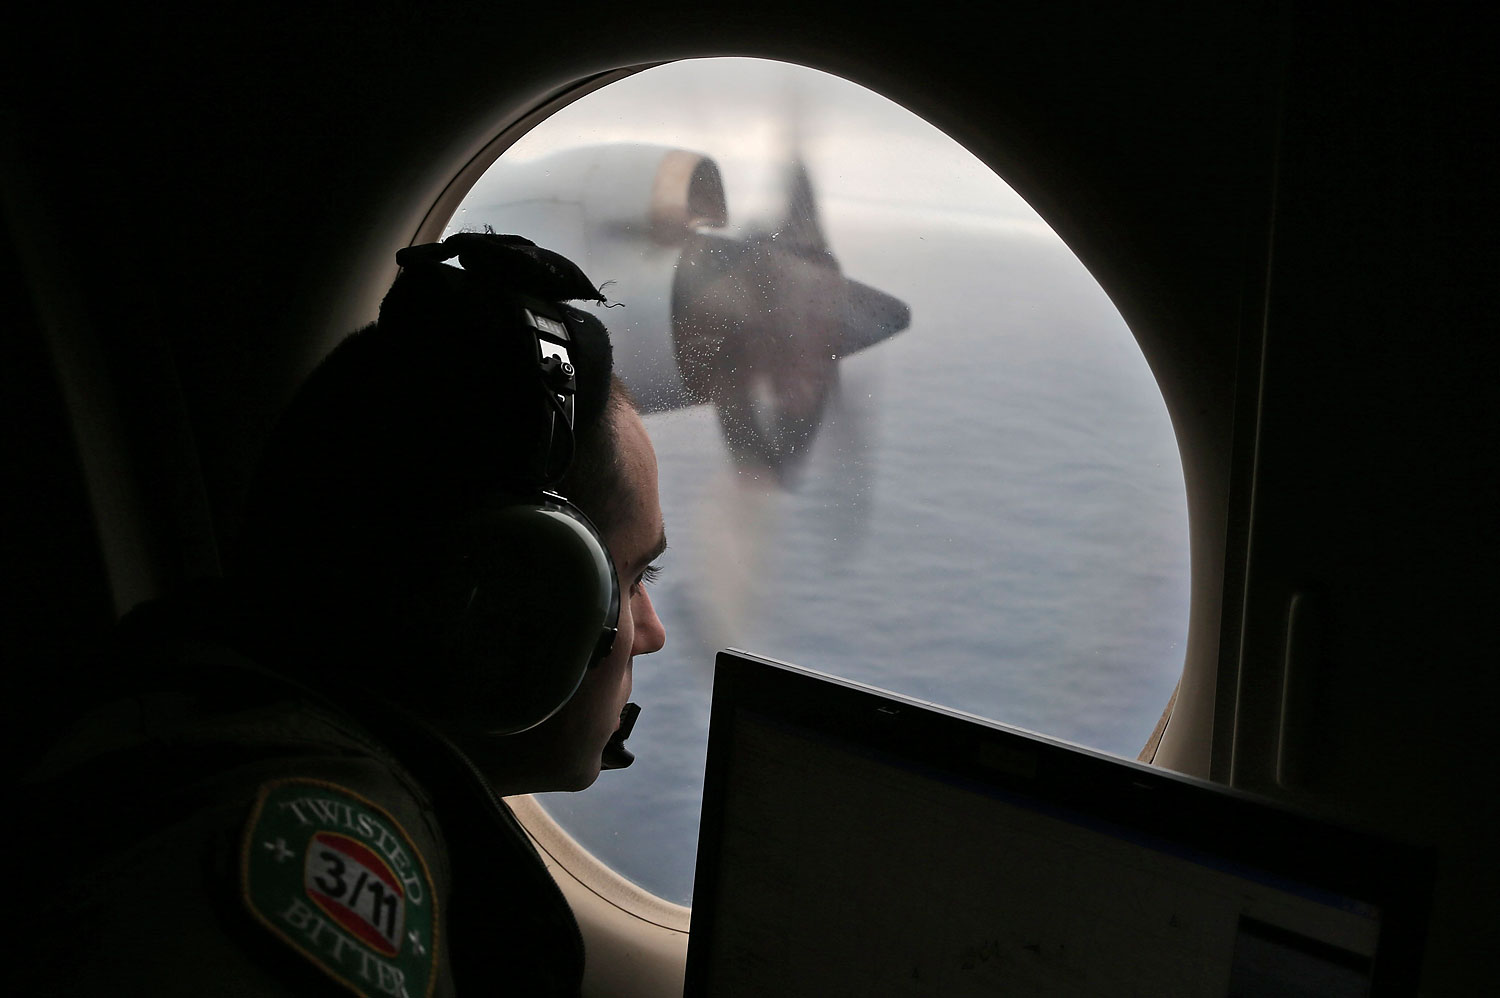 Flight officer Rayan Gharazeddine on board a Royal Australian Air Force AP-3C Orion, scans for the missing Malaysia Airlines Flight MH370 in southern Indian Ocean, Australia, March 22, 2014.